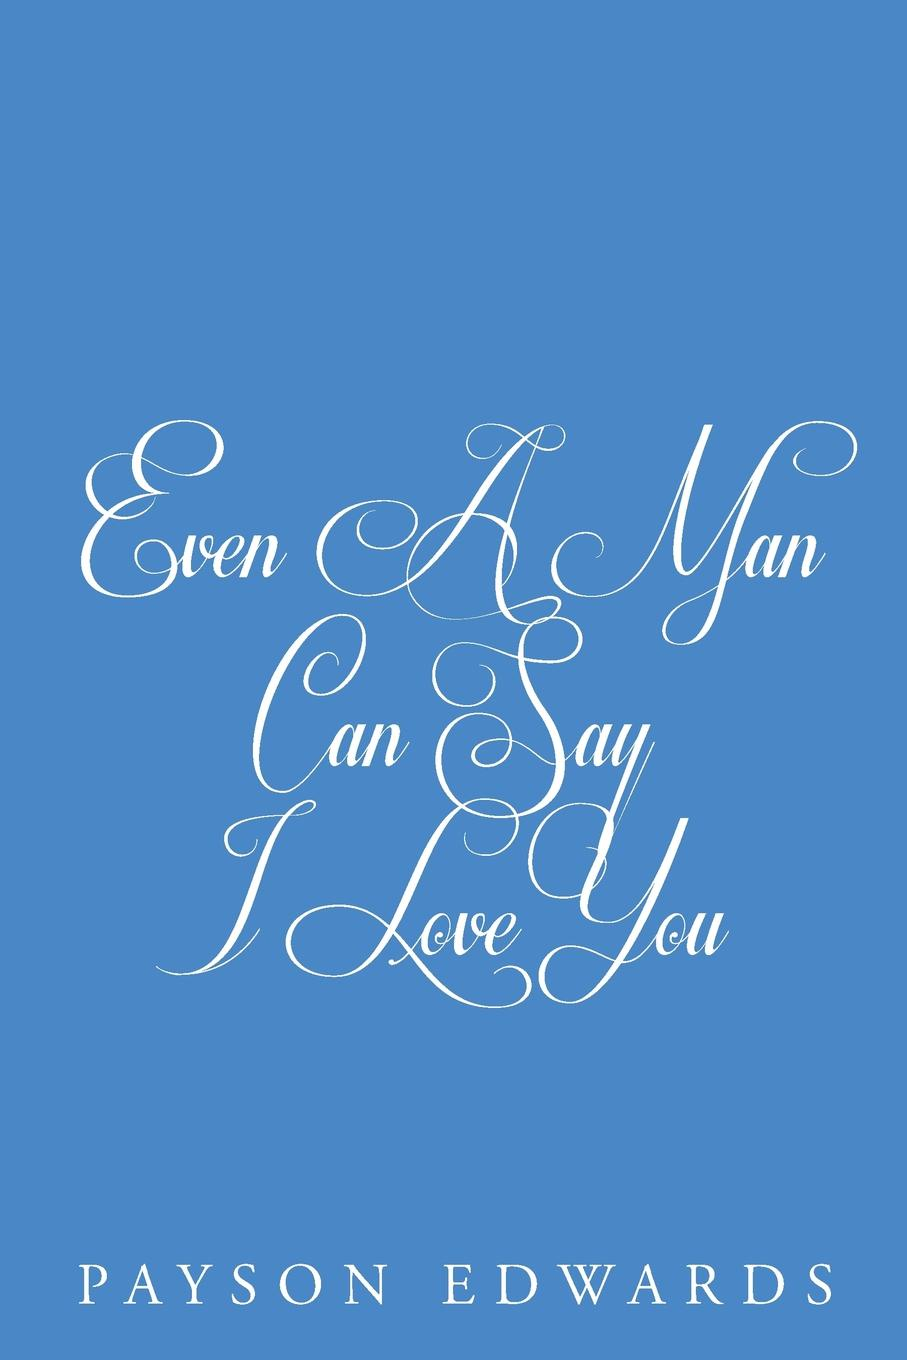 Payson Edwards Even a Man Can Say I Love You can you say it too twit twoo